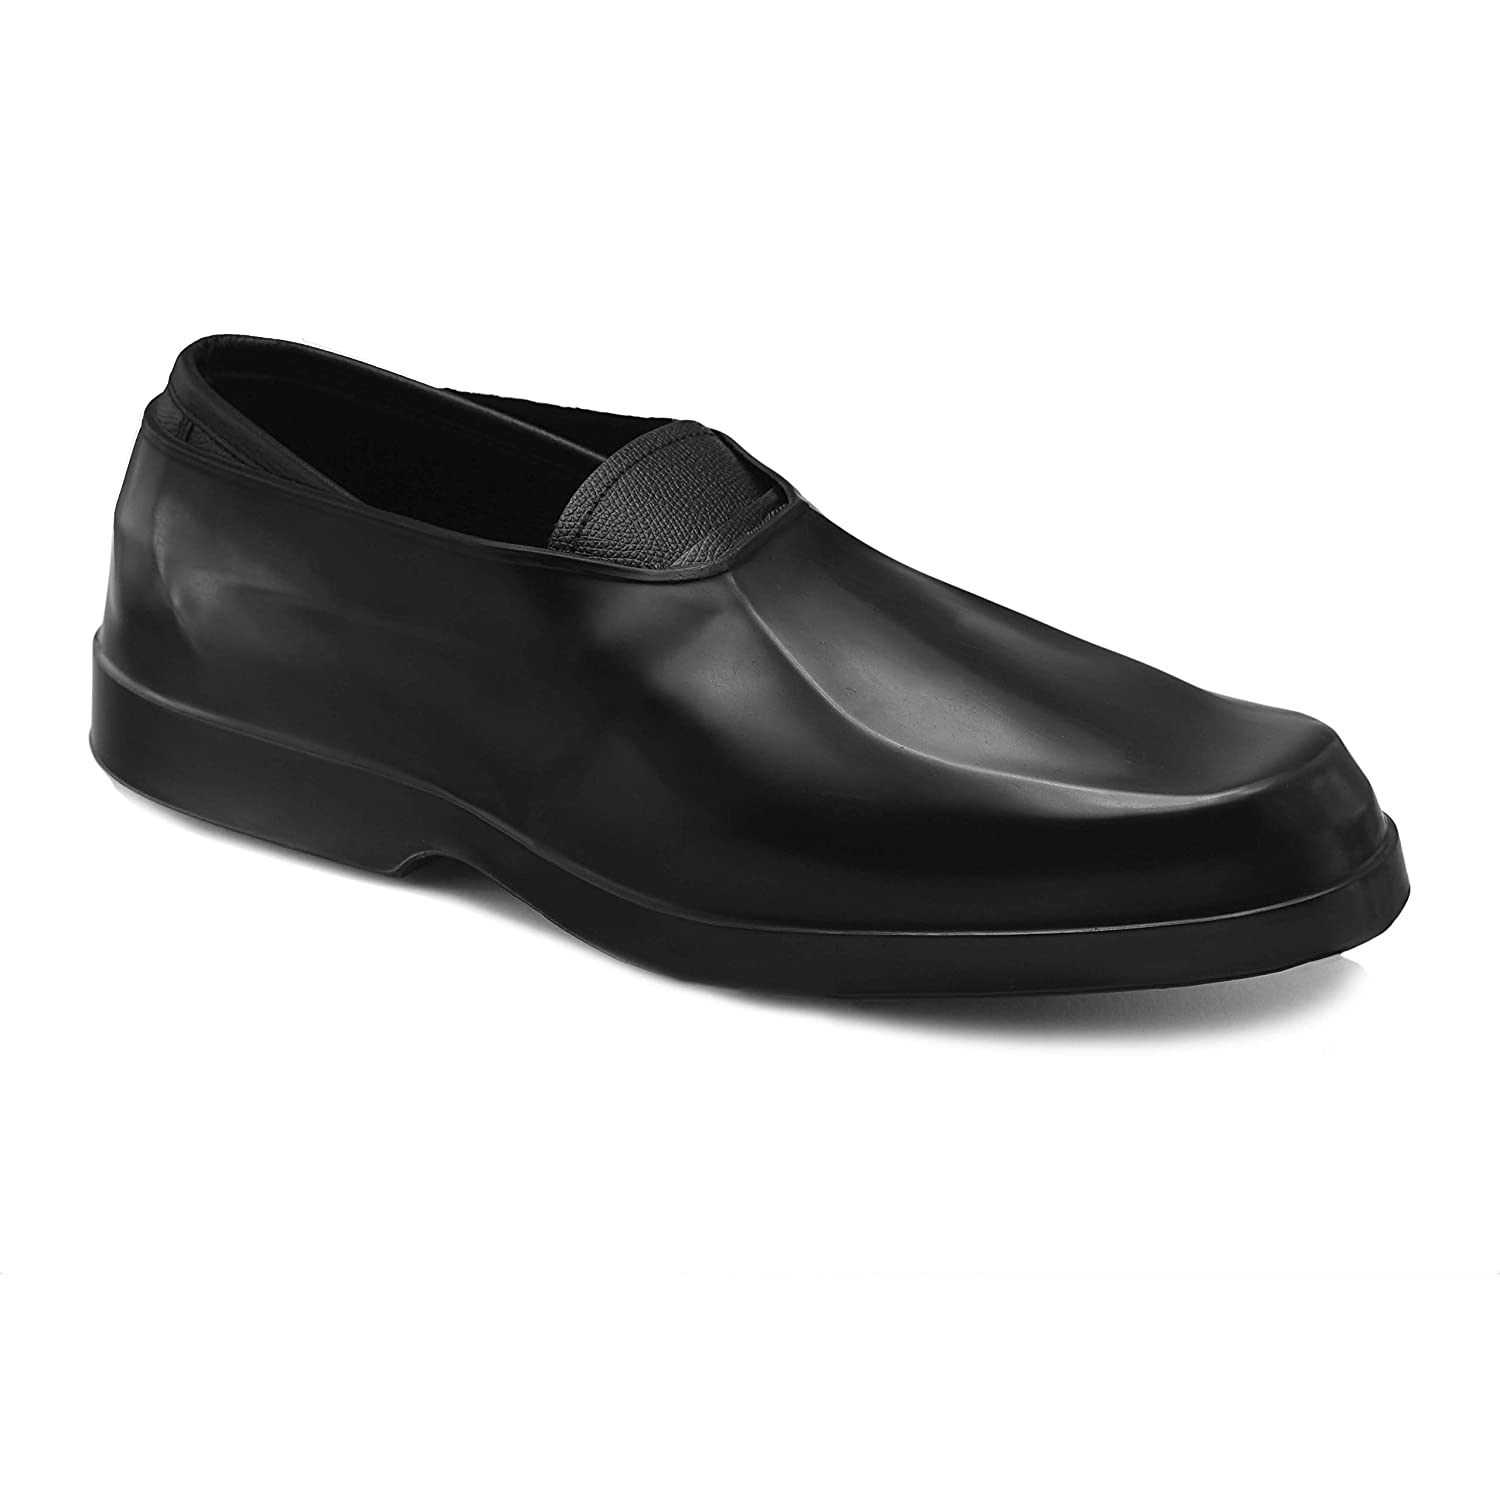 afaa6ab62858ad Amazon.com  ArcticRubber™ Mens Rubber overshoe Waterproof Galoshes for  Dress shoes (Black)  Home Improvement